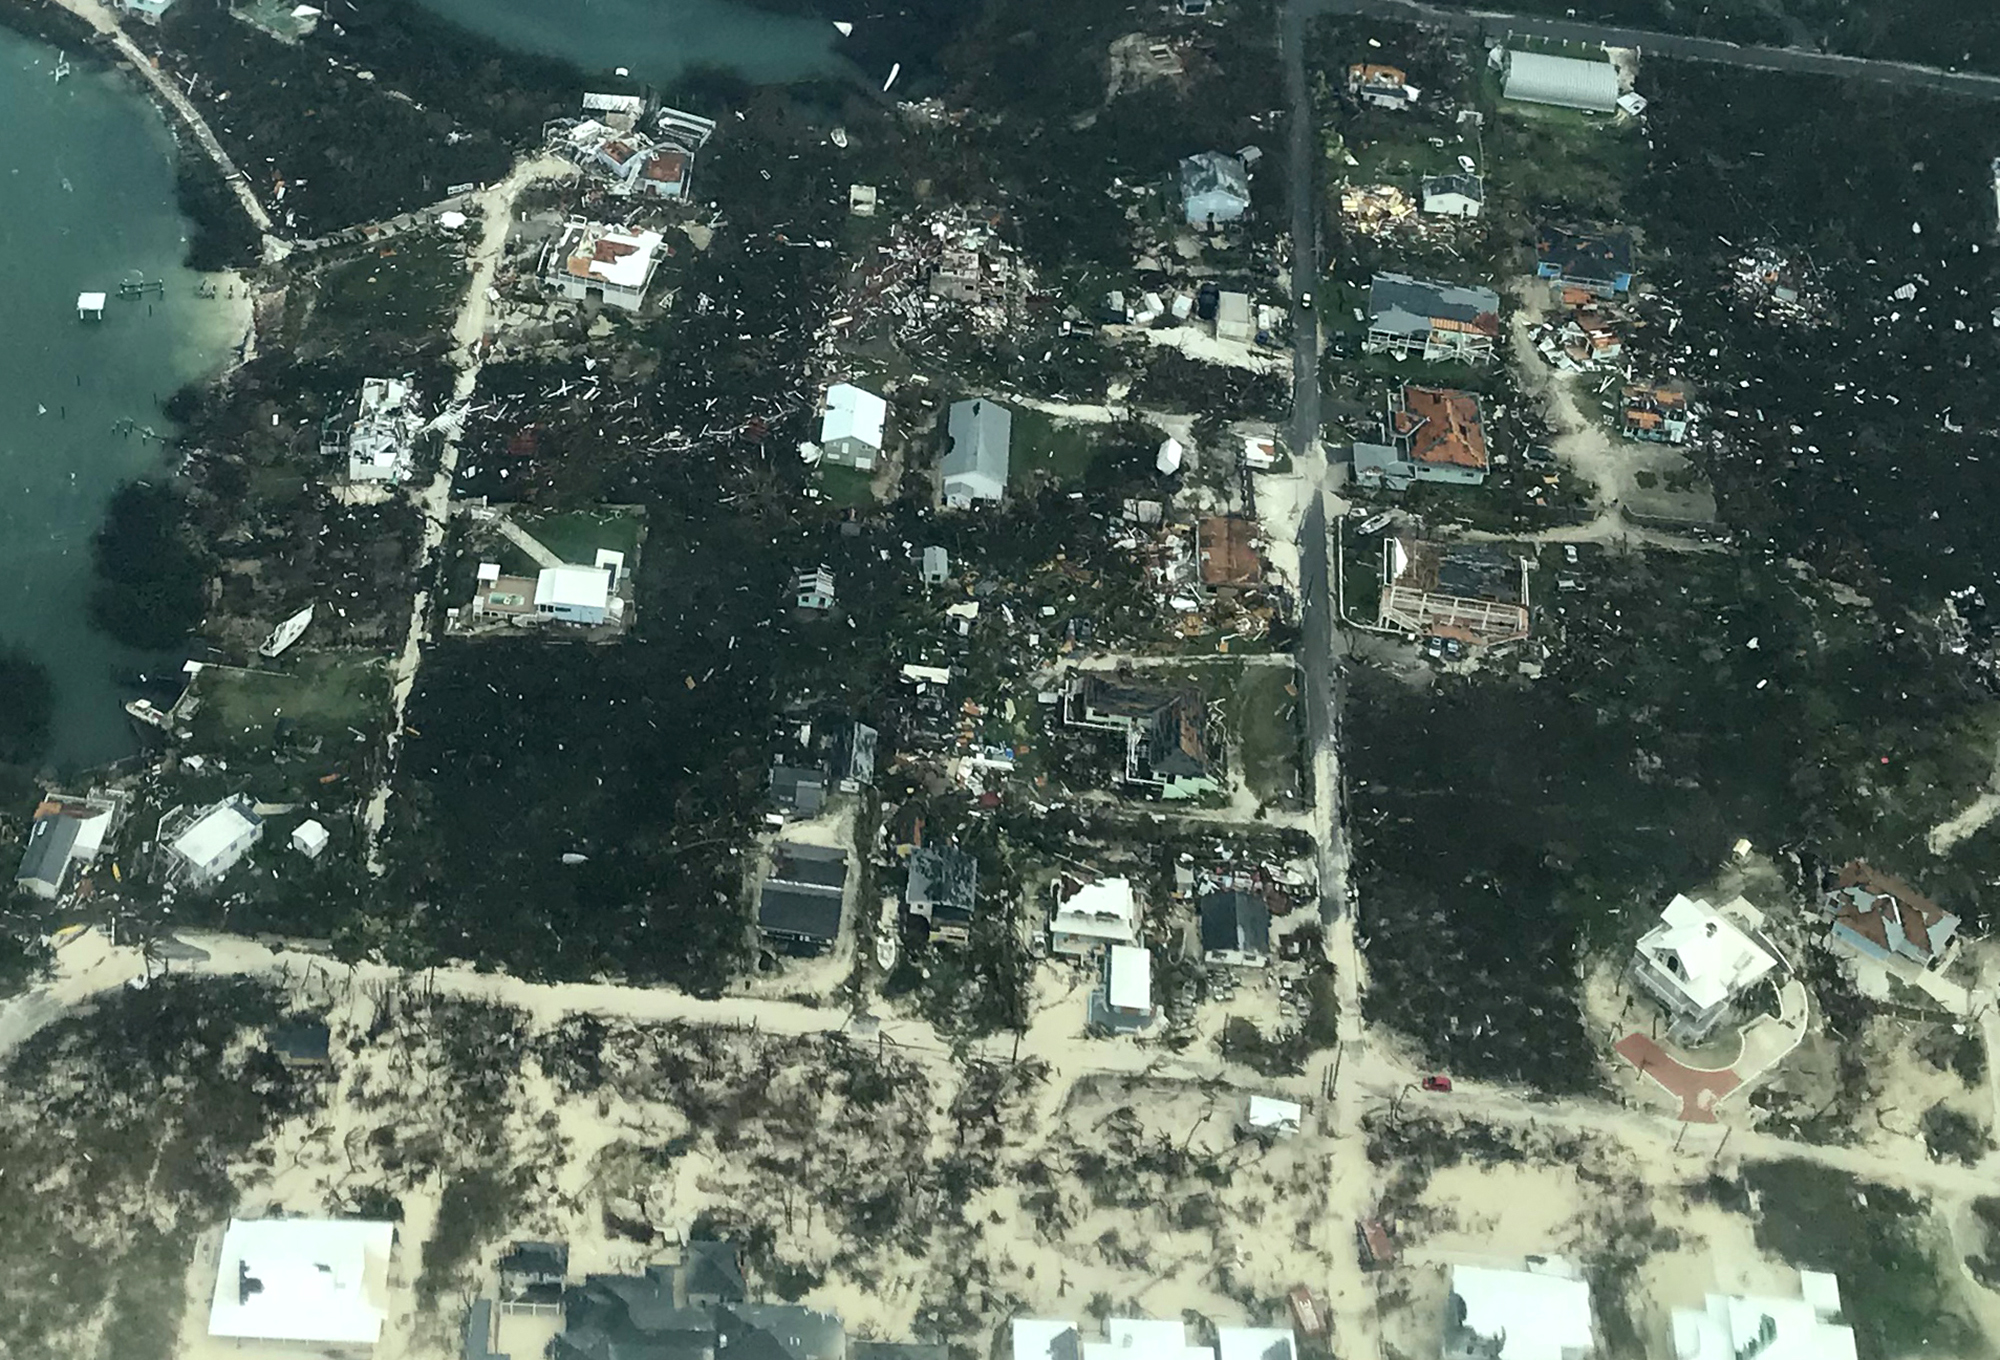 In this handout aerial photo provided by the HeadKnowles Foundation, damage is seen from Hurricane Dorian on Abaco Island on September 3, 2019 in the Bahamas.